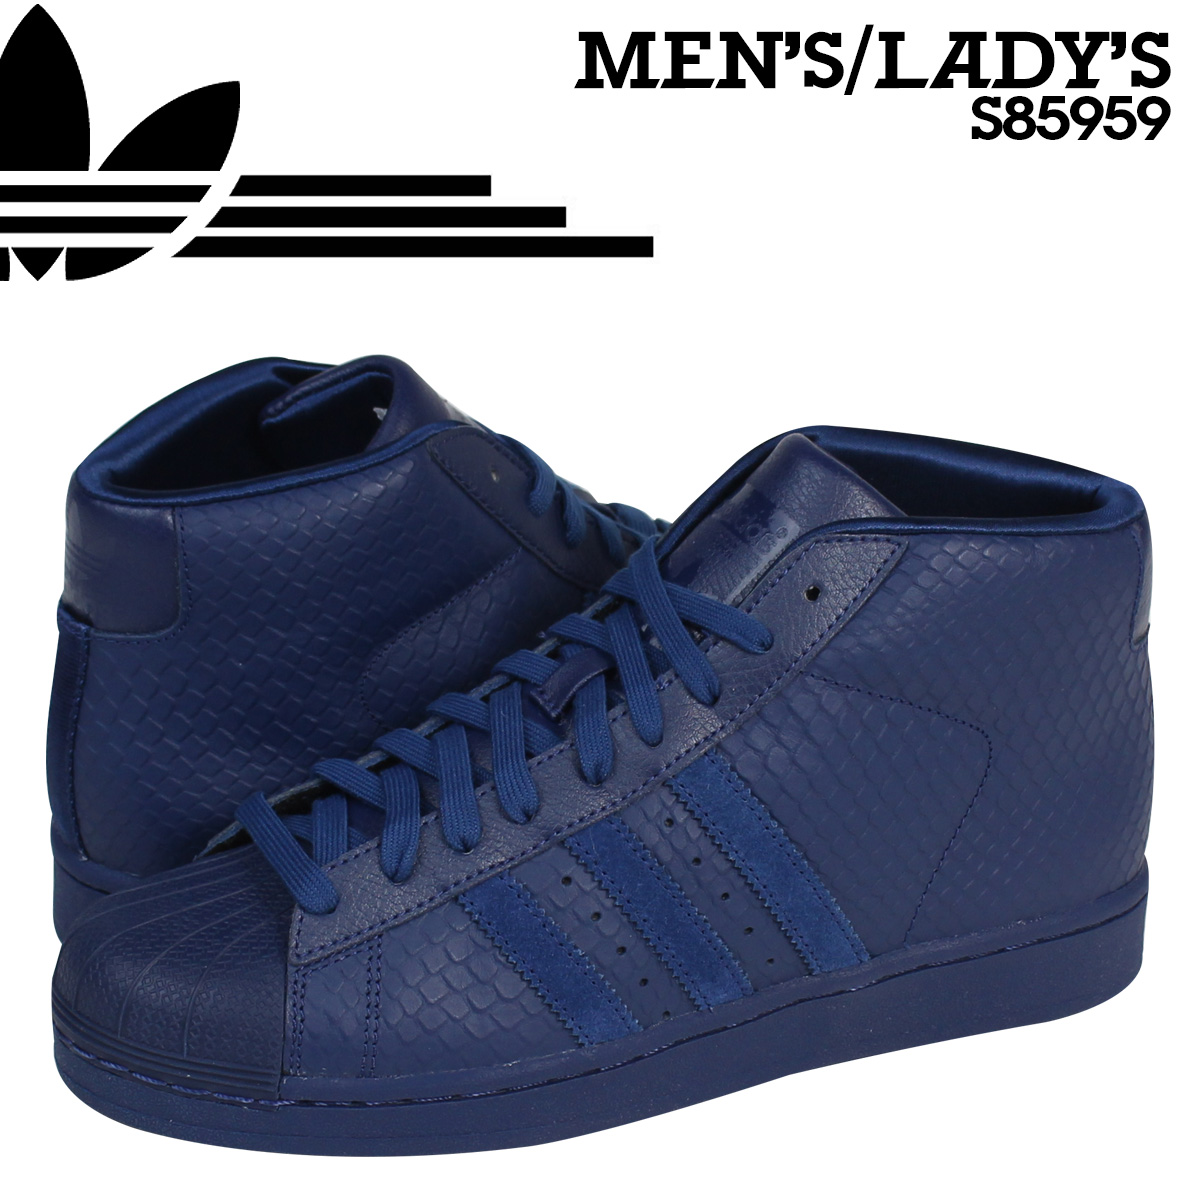 adidas Originals Pro Model Men's